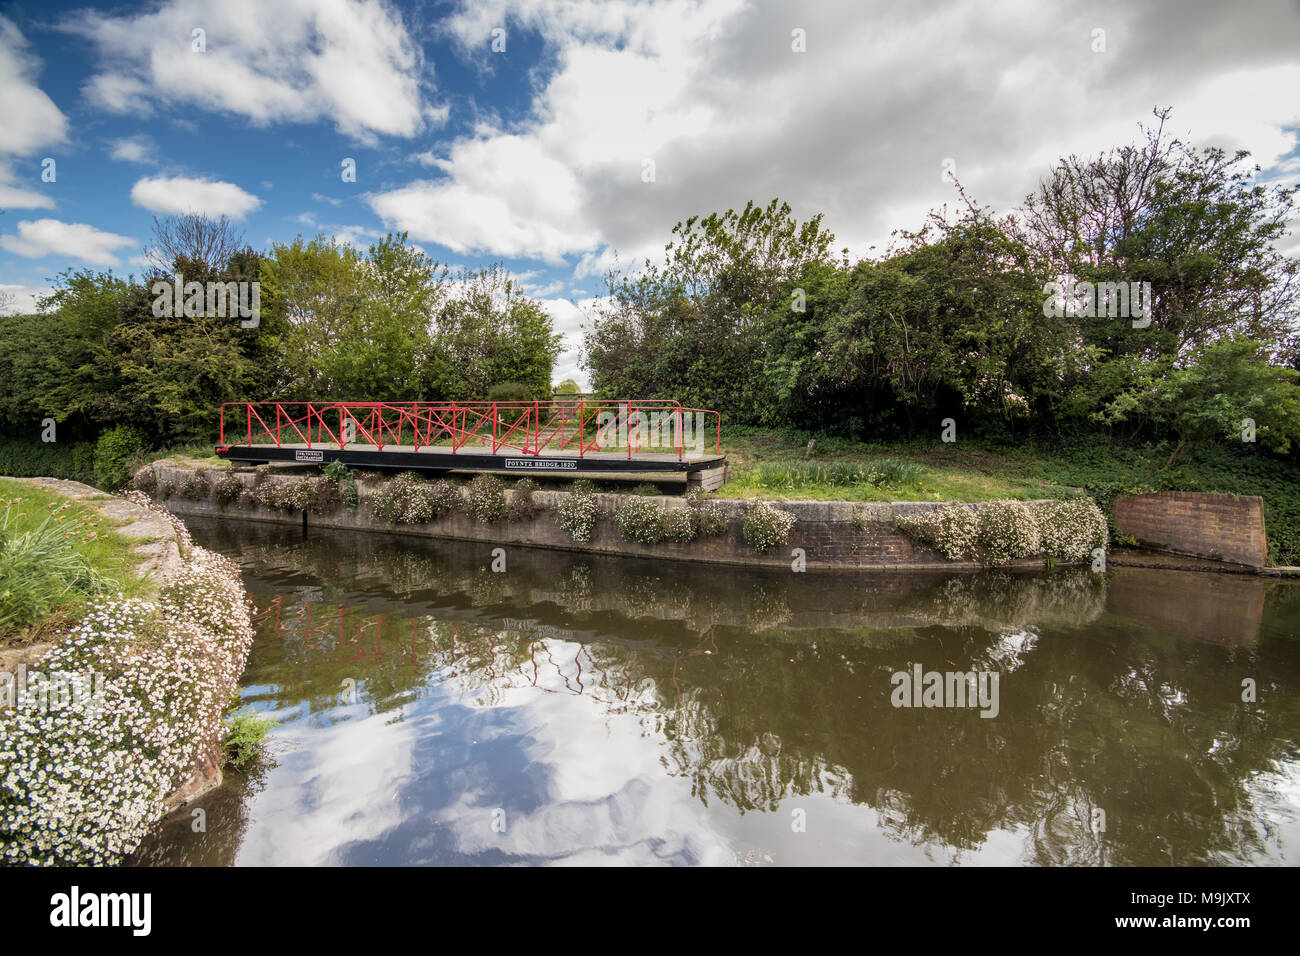 Canal lock at Chichester Ship Canal, Chichester, West Sussex, UK Stock Photo